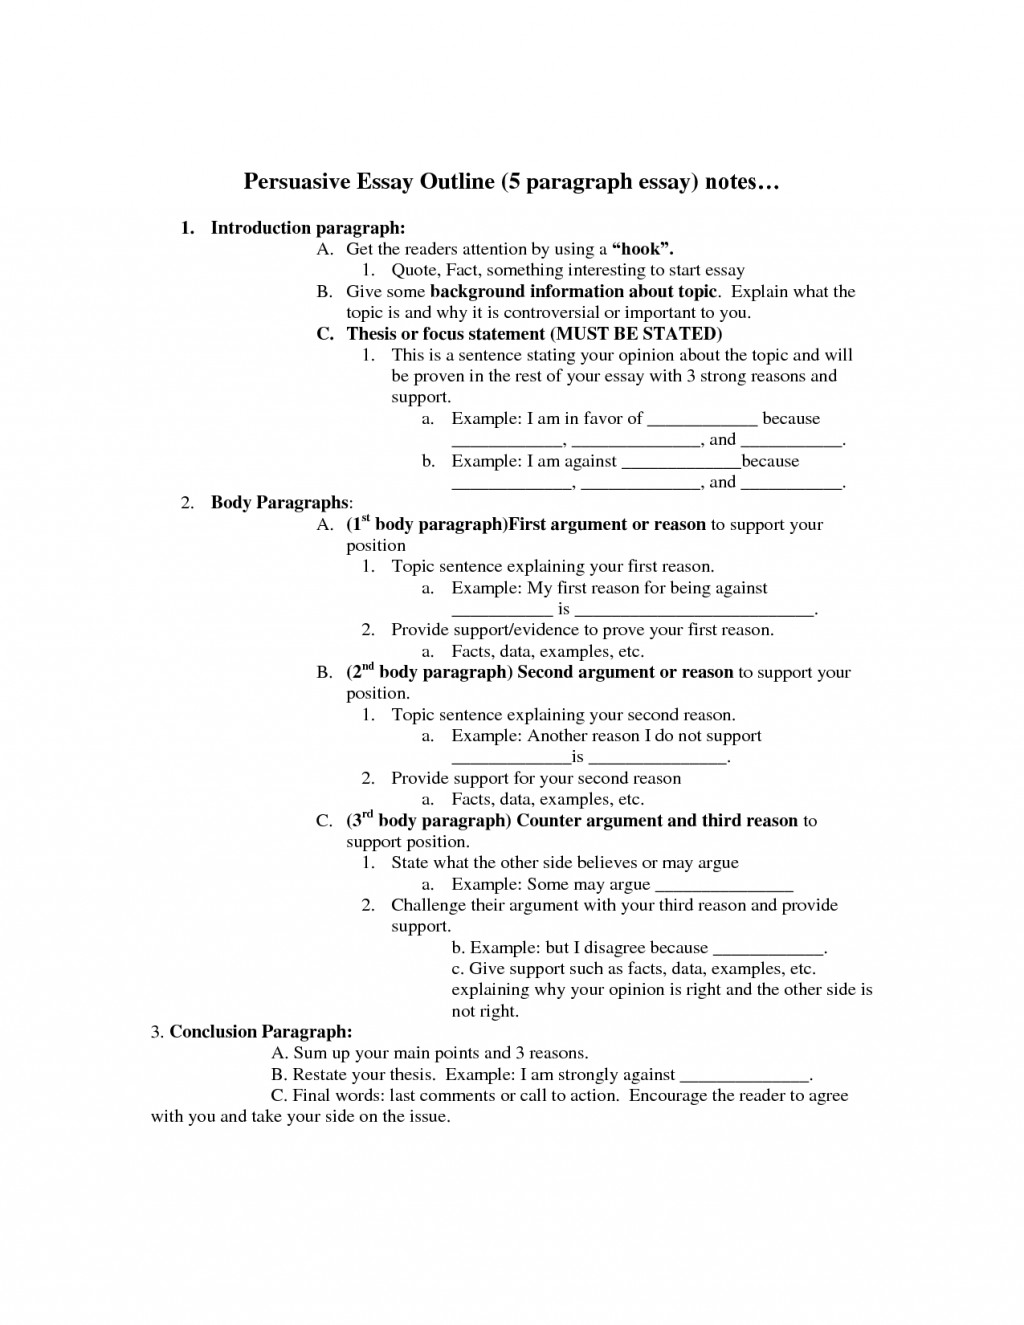 006 Persuasive Essay Outline Unbelievable Argumentative 5th Grade Template Pdf Large